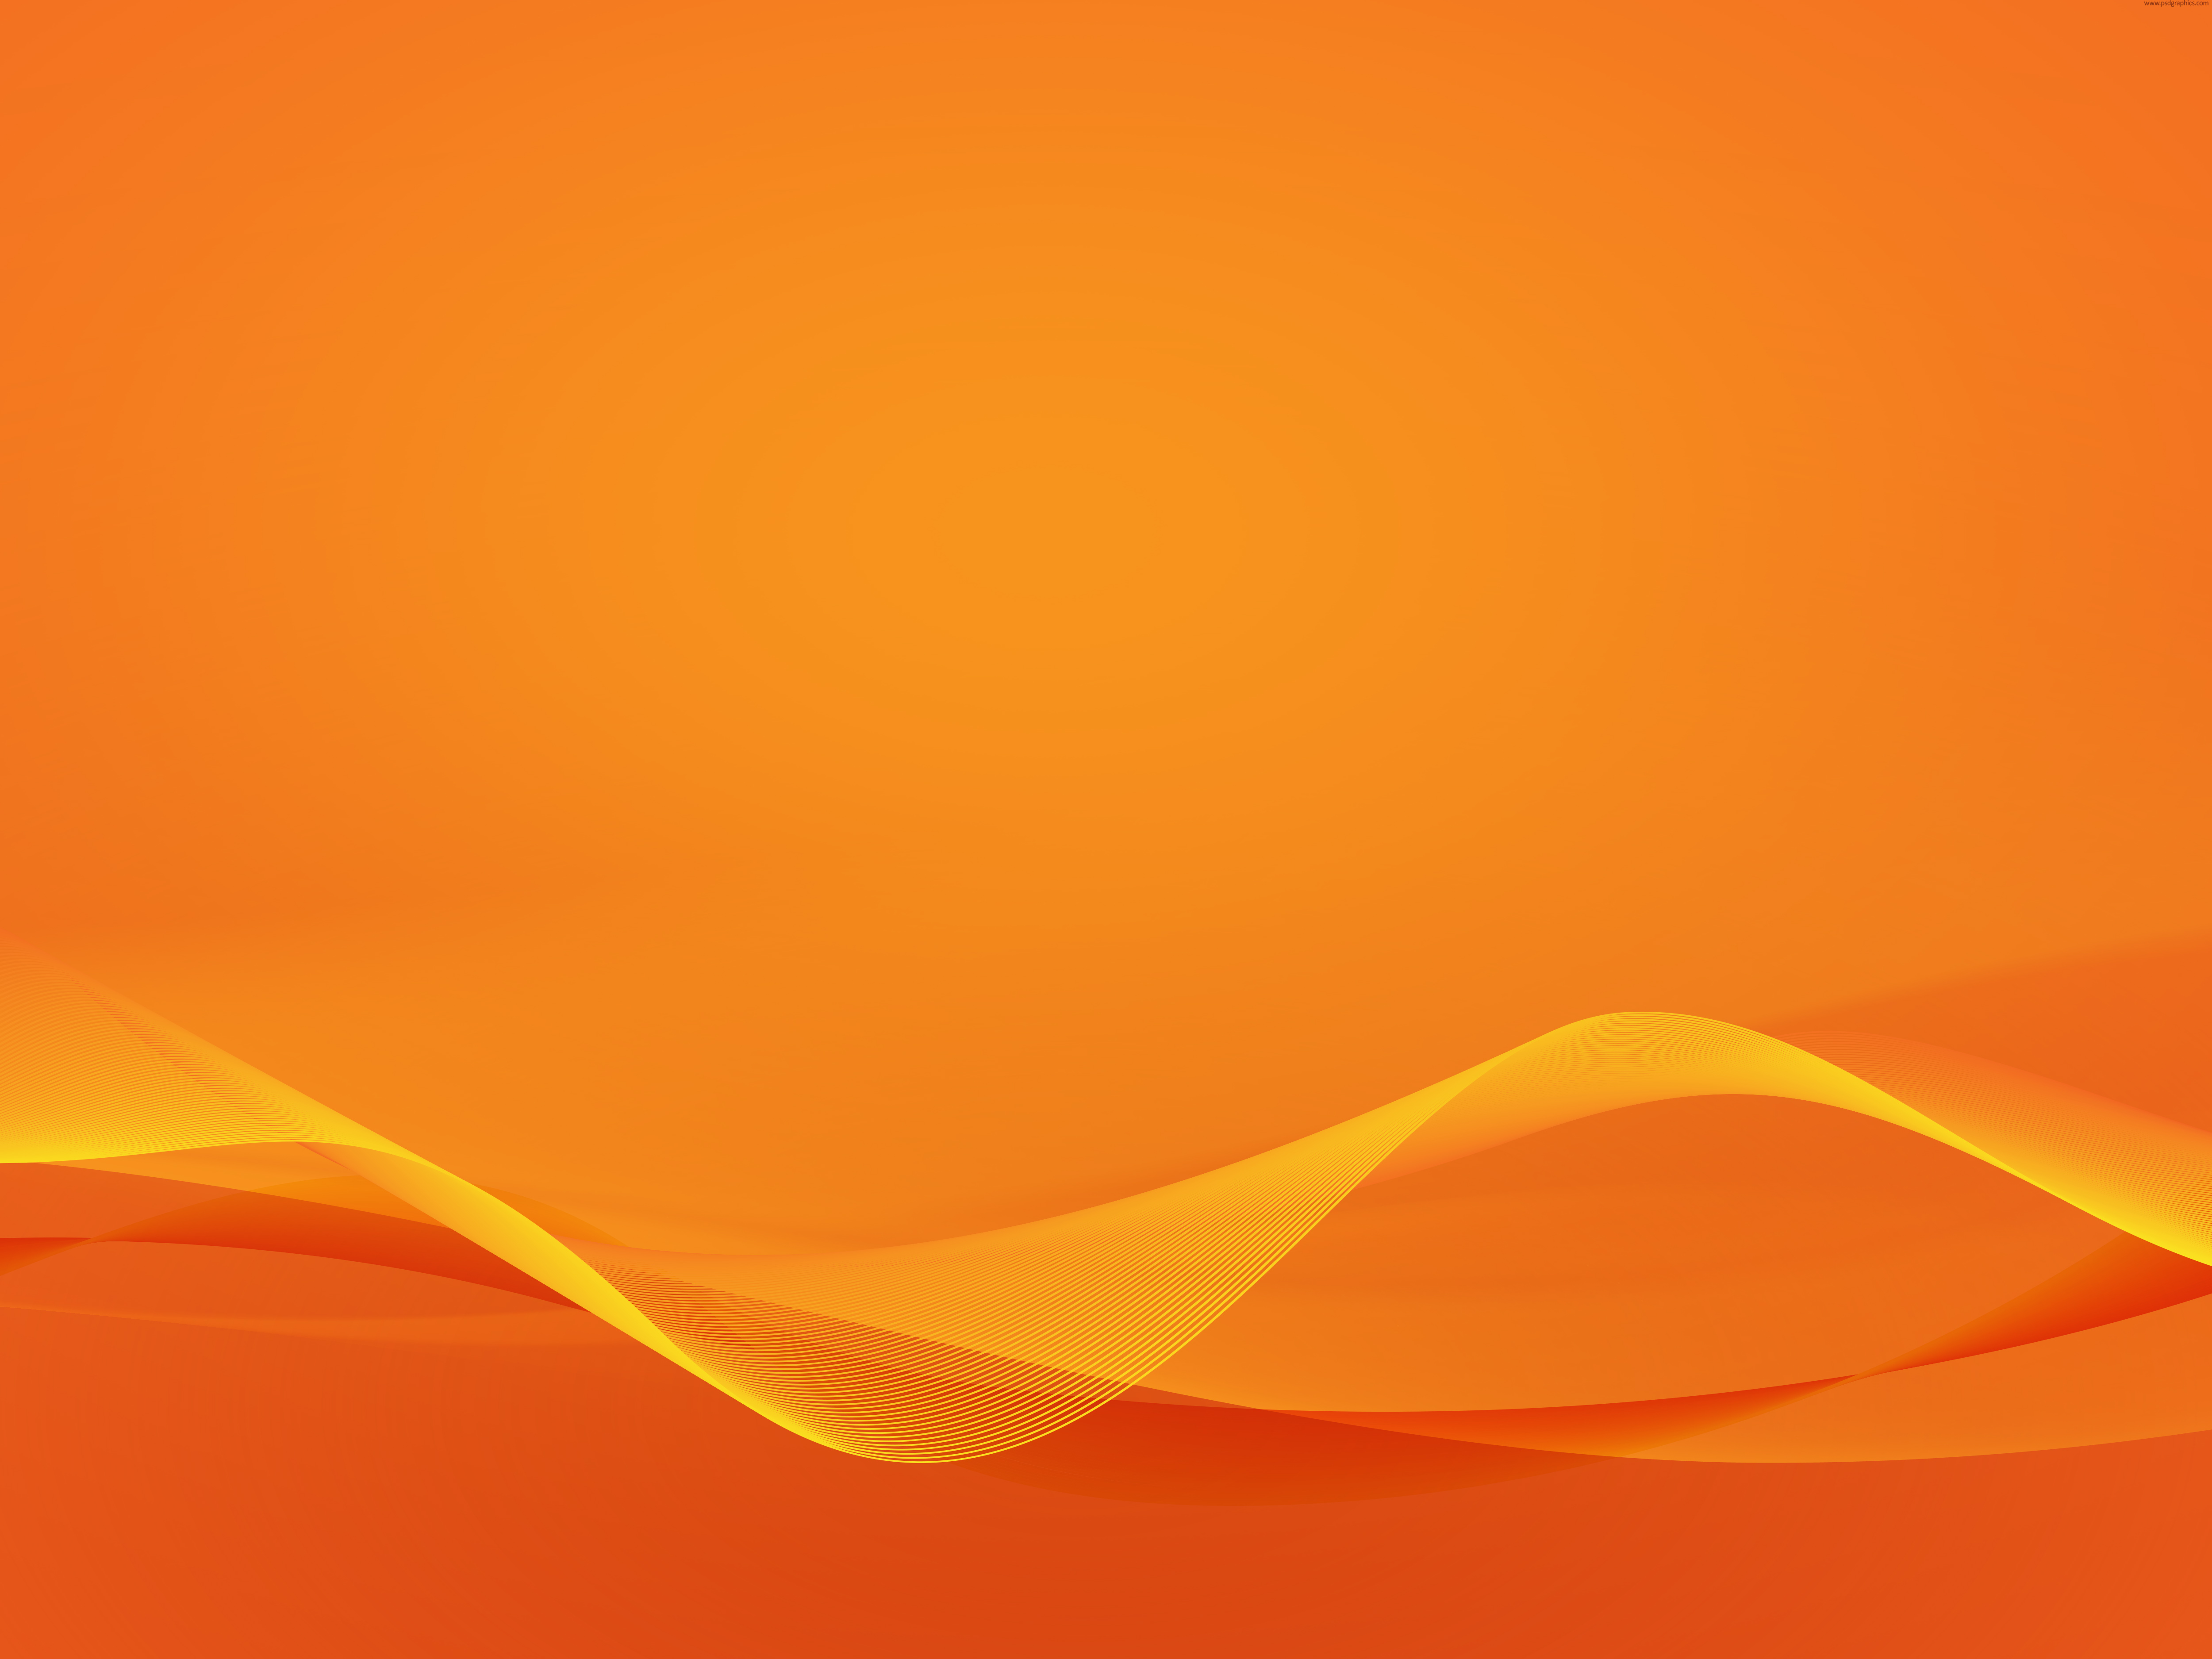 wavy orange design | psdgraphics